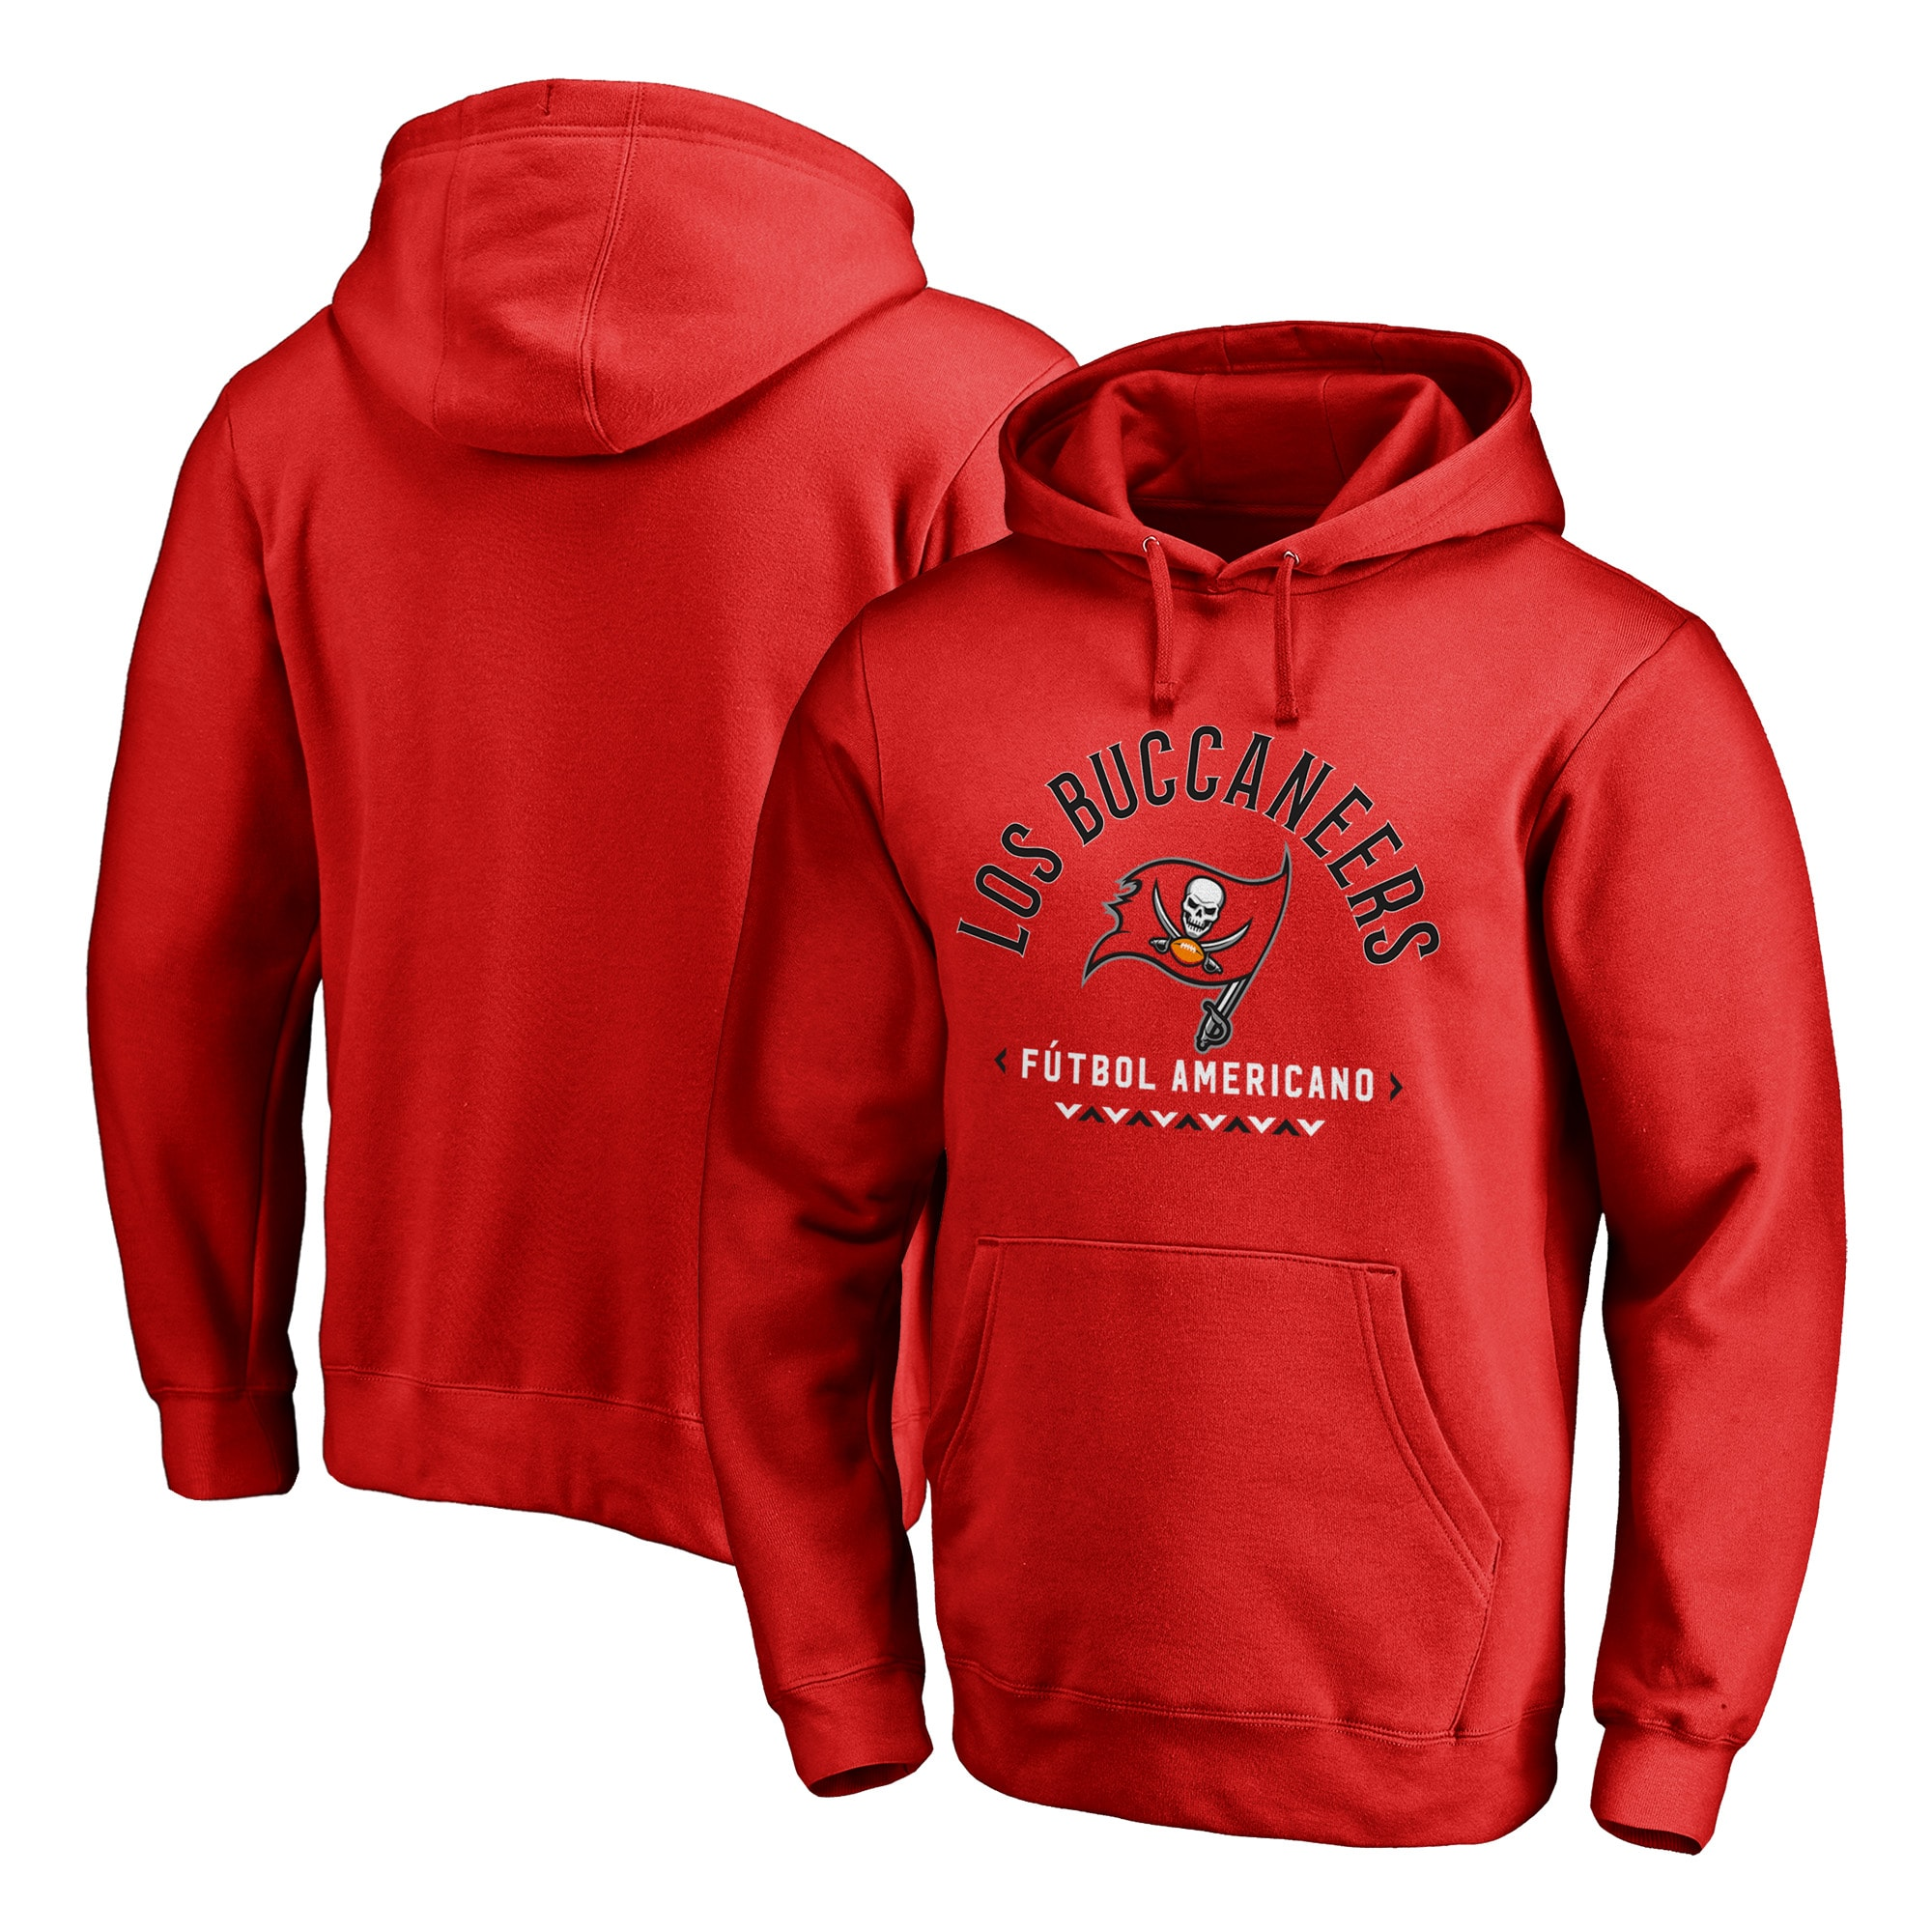 Tampa Bay Buccaneers NFL Pro Line by Fanatics Branded Futbol Americano Pullover Hoodie - Red